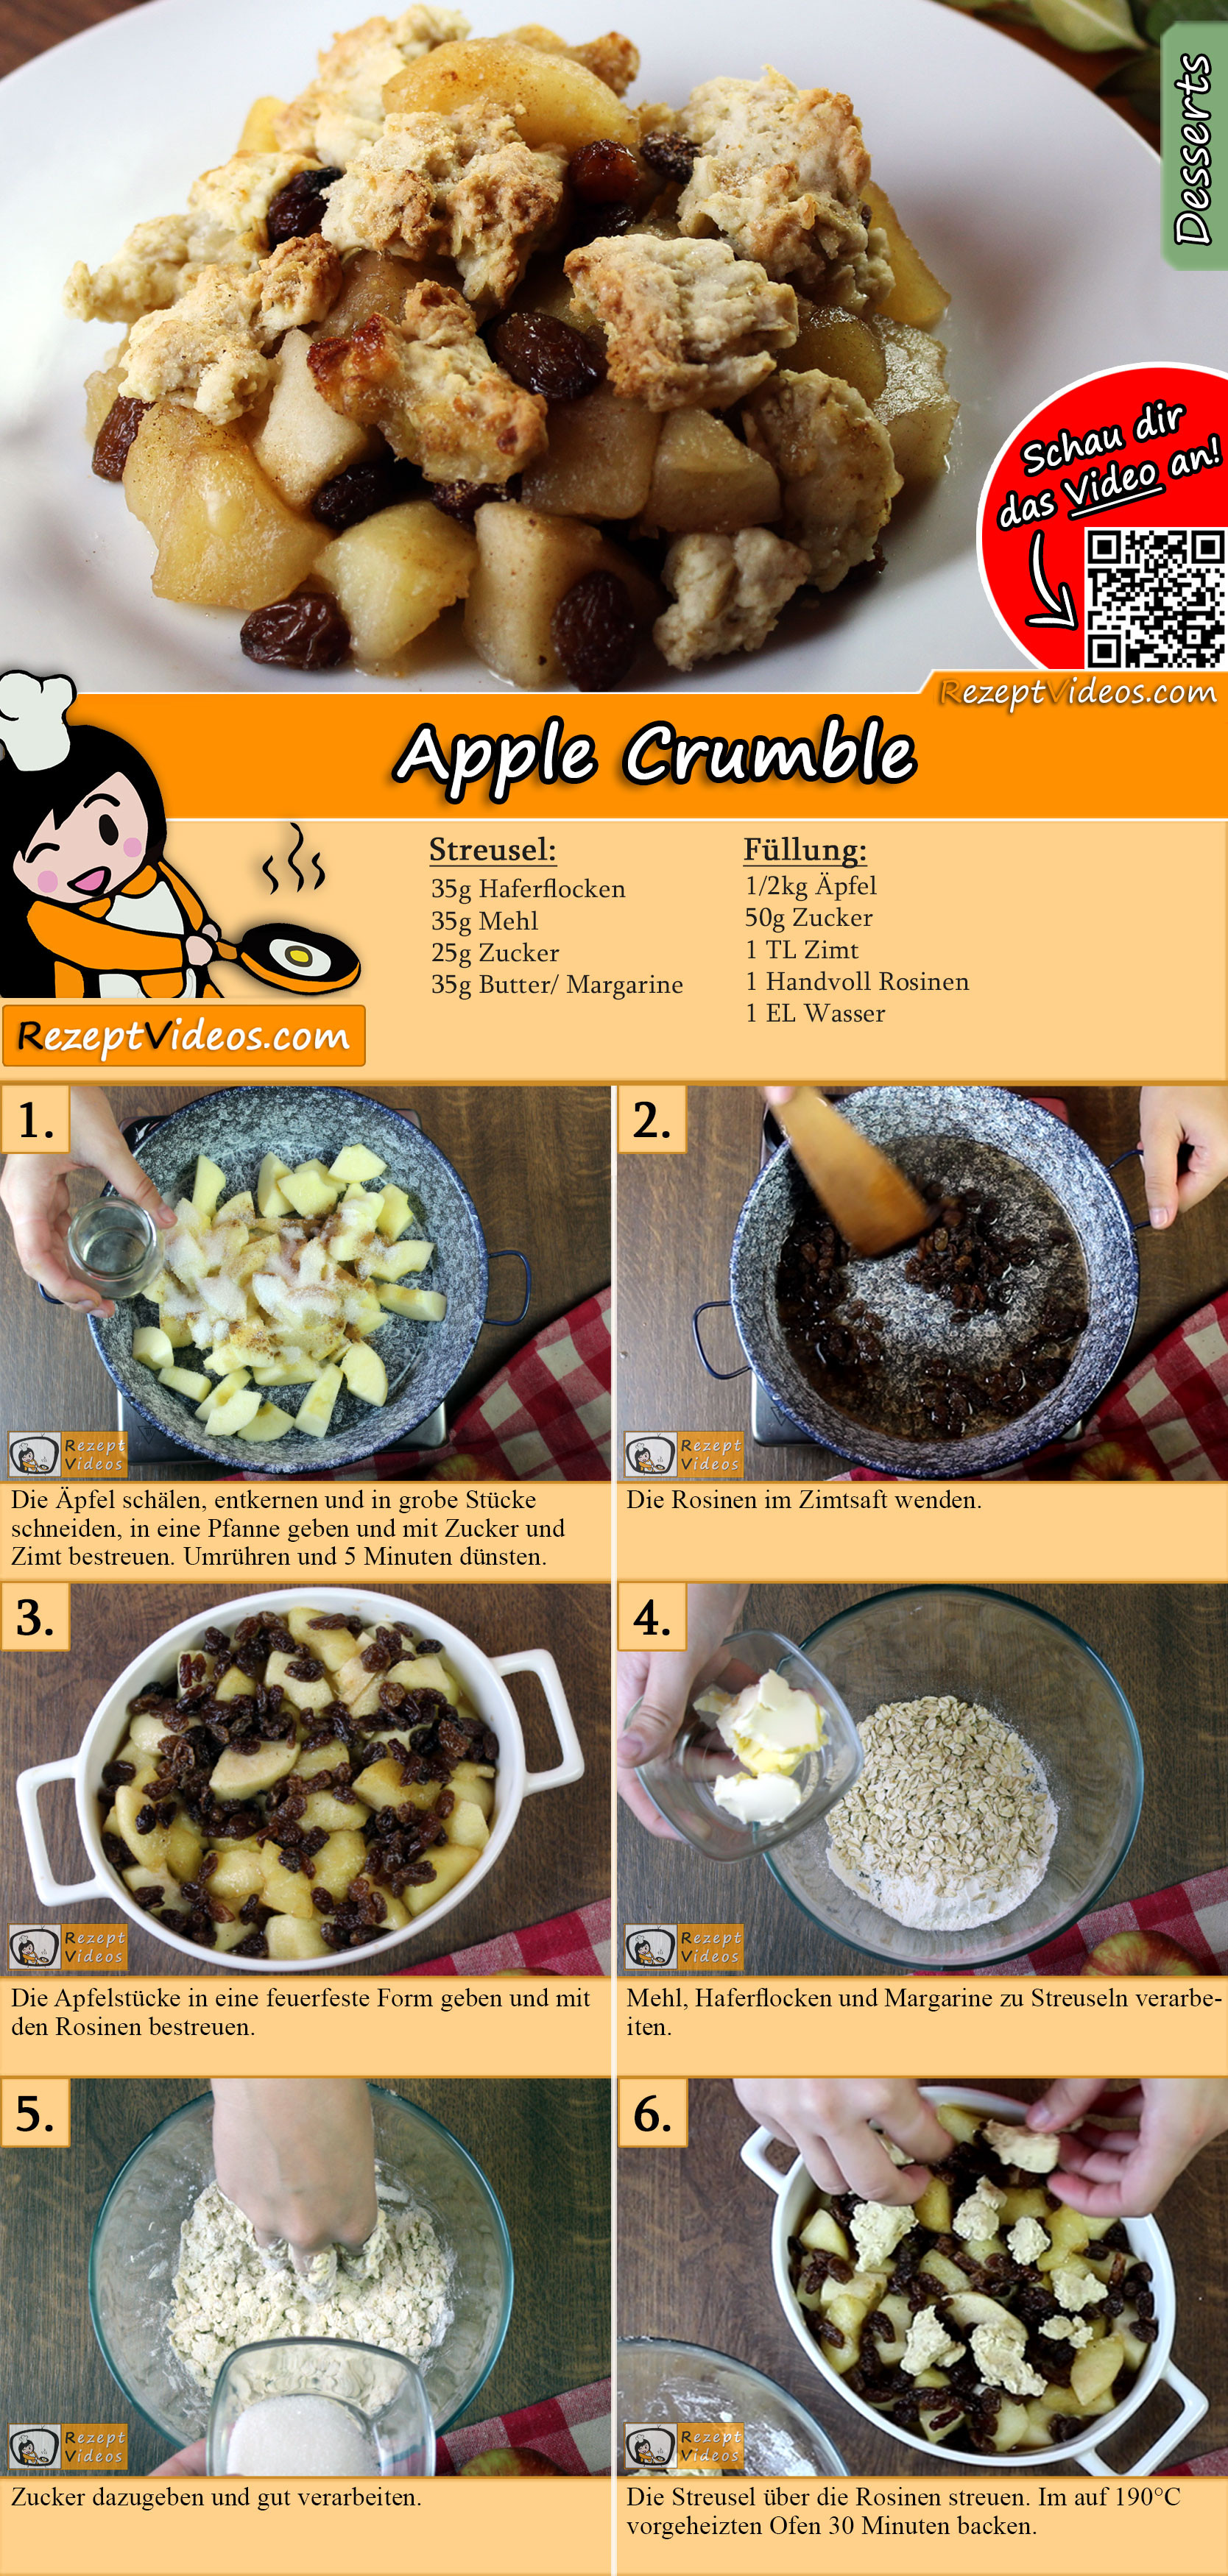 Apple Crumble recipe with video